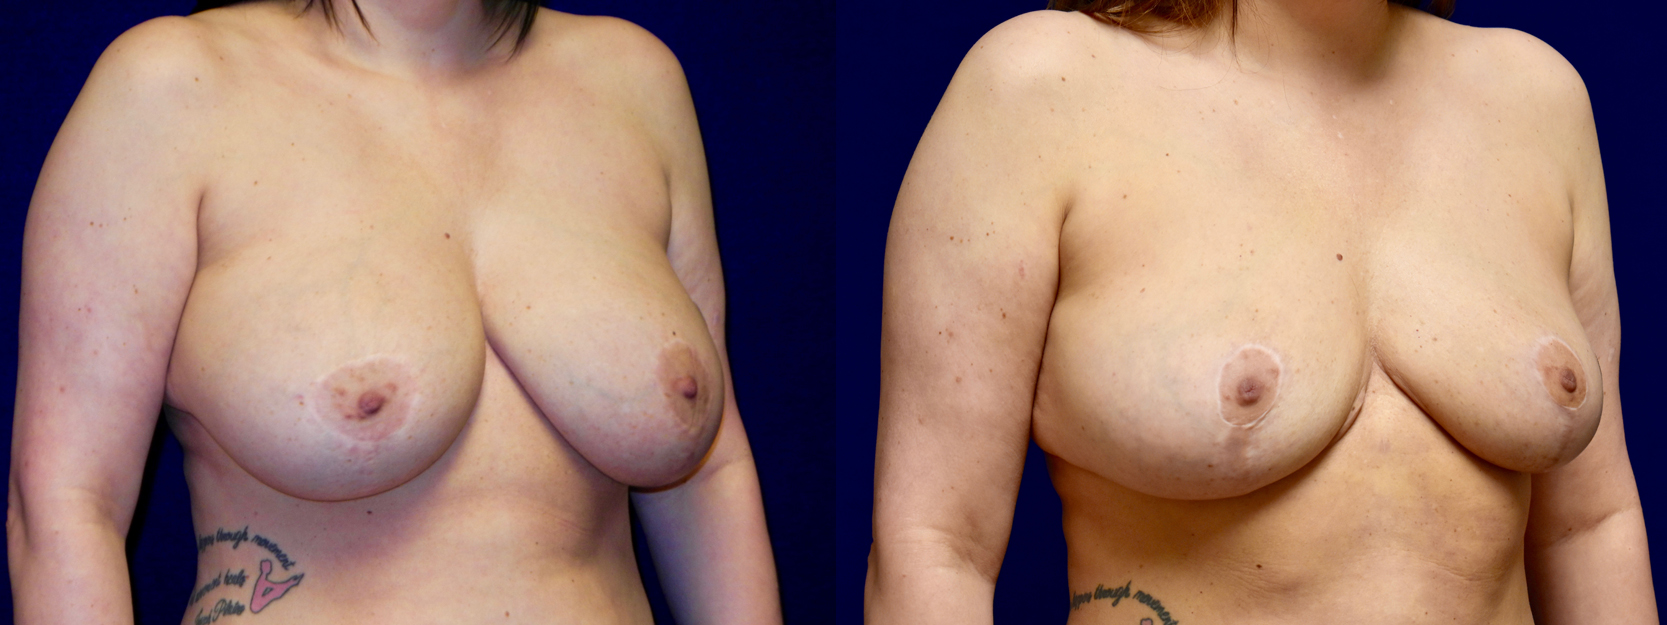 Right 3/4 View - Breast Implant Removal with Reduction and Lift